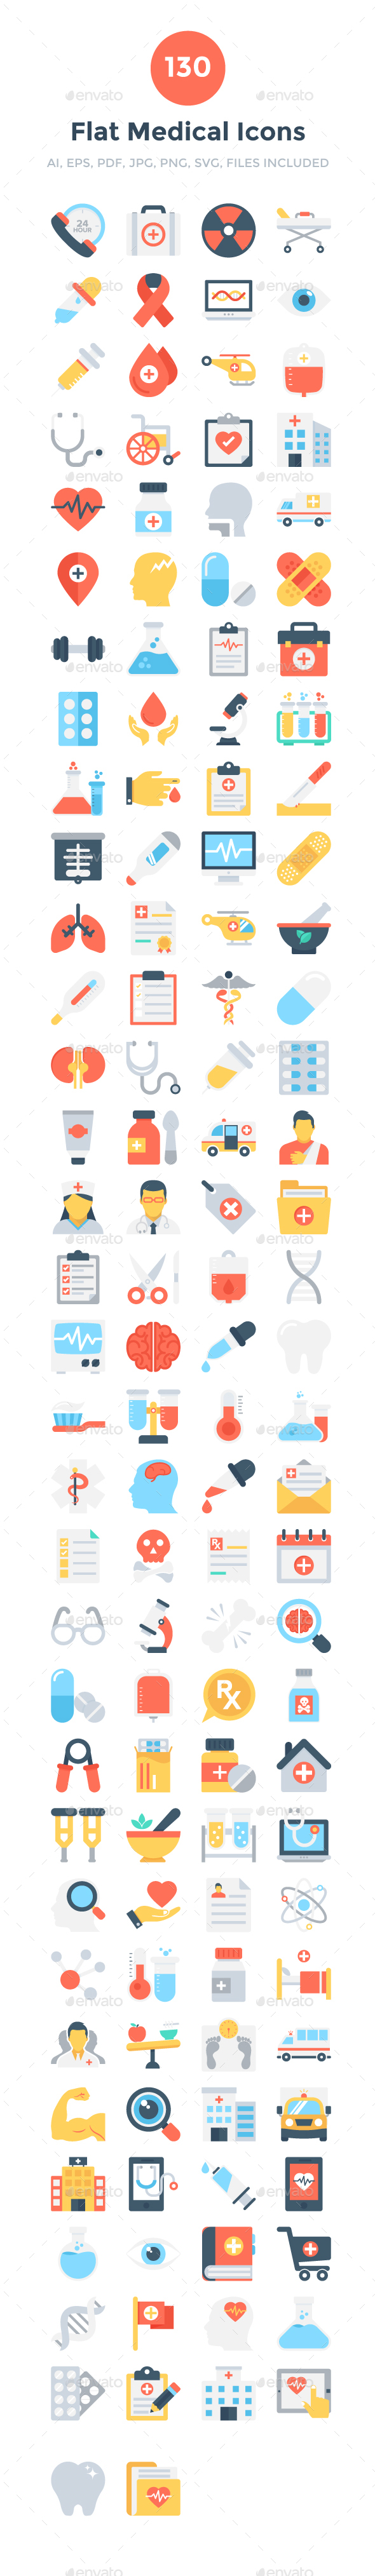 GraphicRiver 130 Flat Medical Icons 20694058